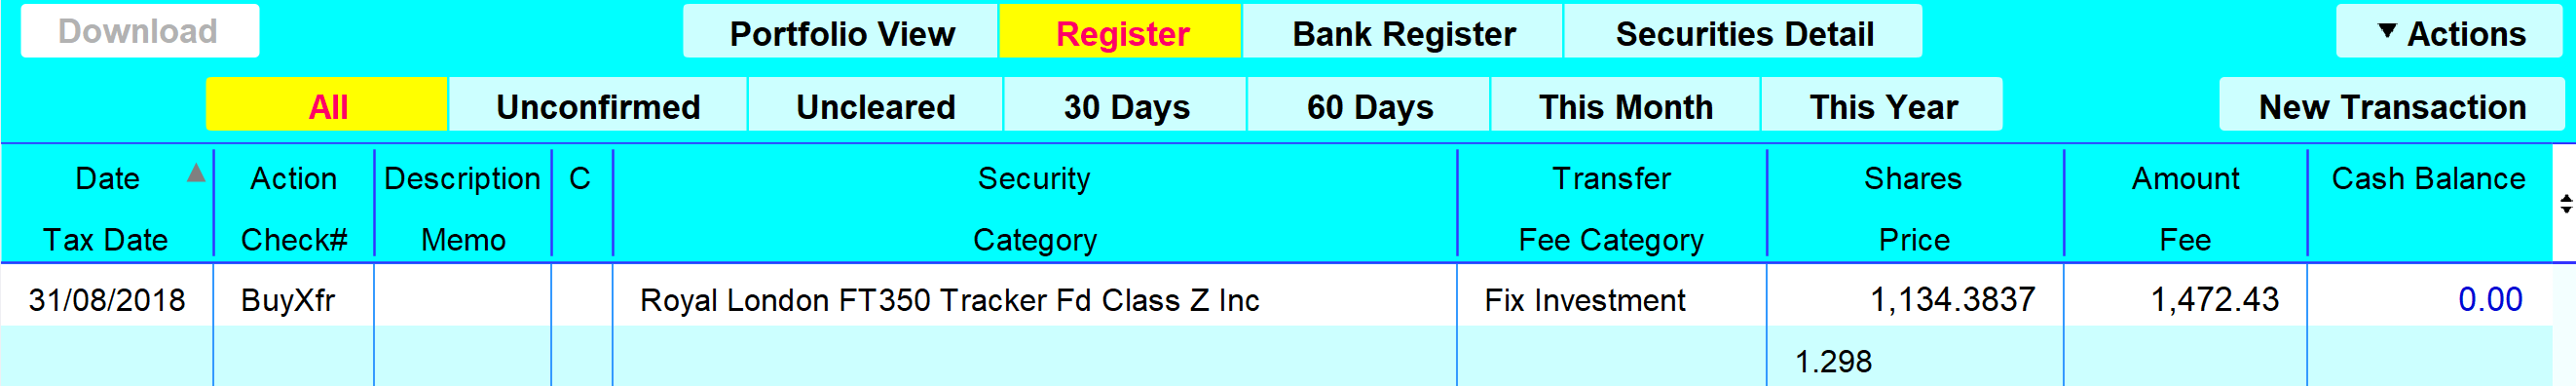 Investment_account_register